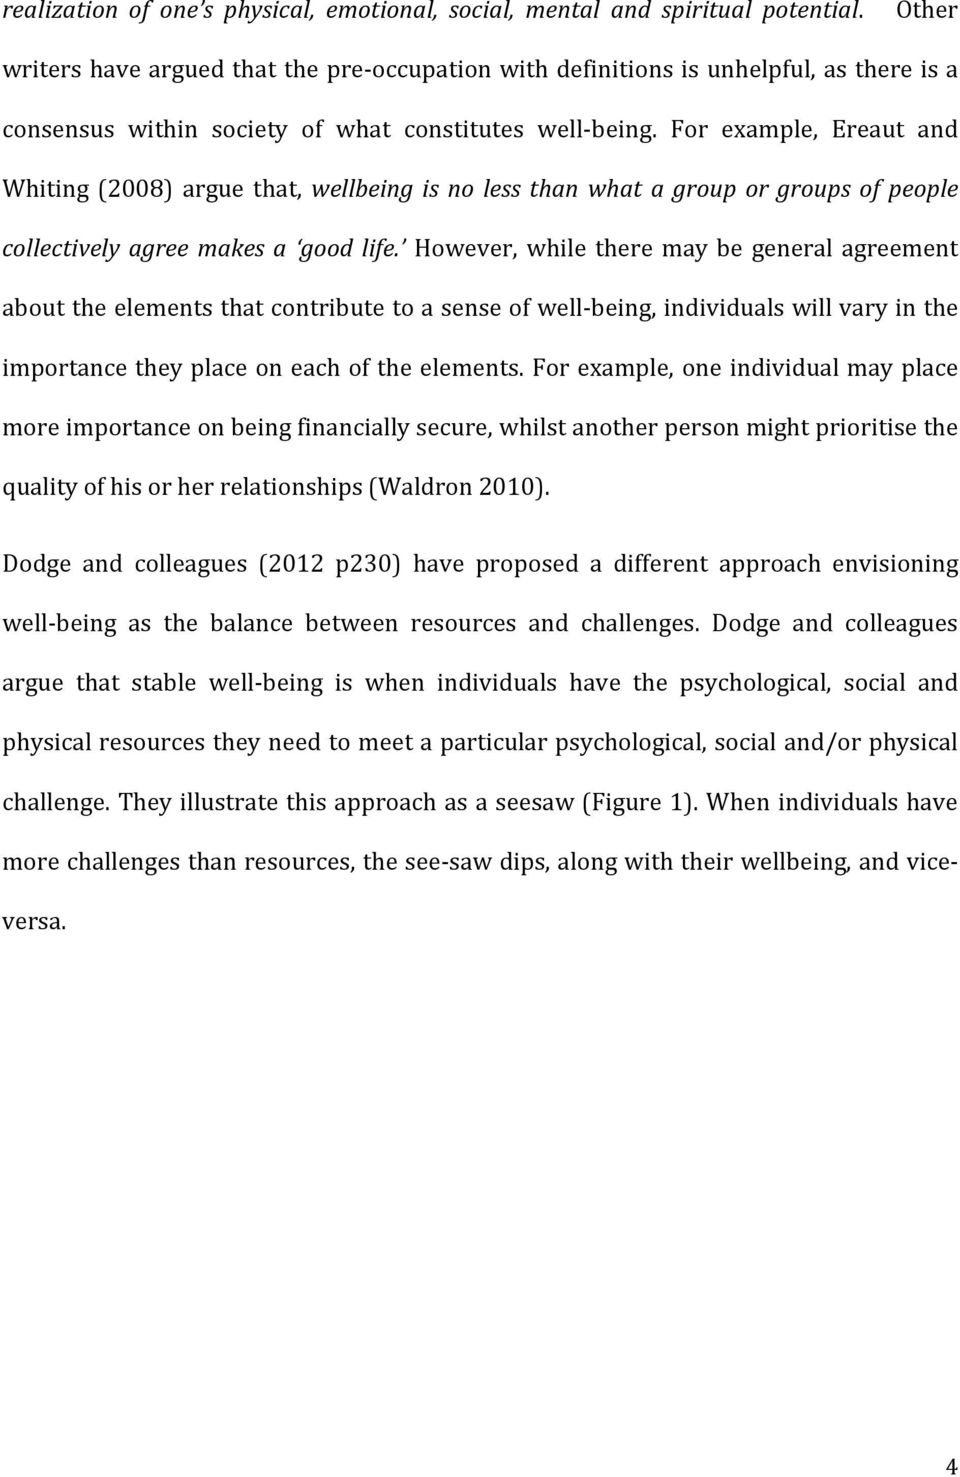 For example, Ereaut and Whiting (2008) argue that, wellbeing is no less than what a group or groups of people collectively agree makes a good life.